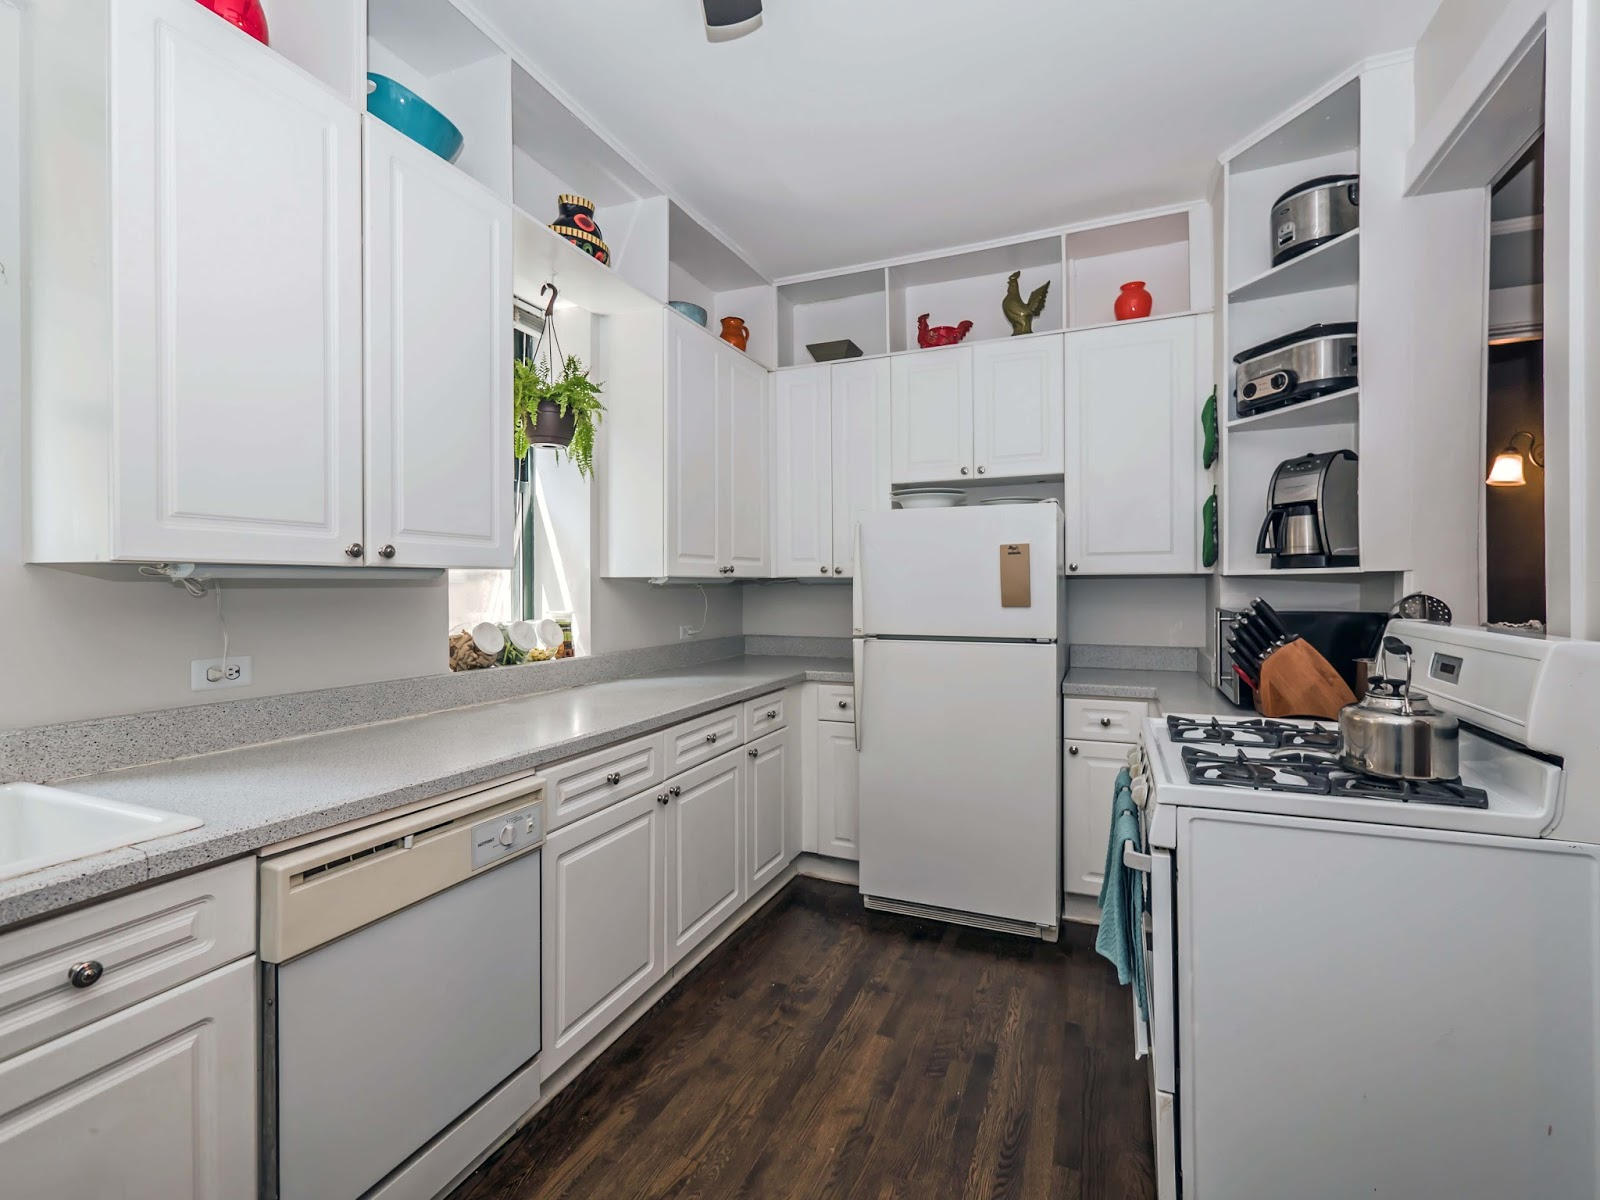 Convert Kitchen Cabinets To Europeon Look